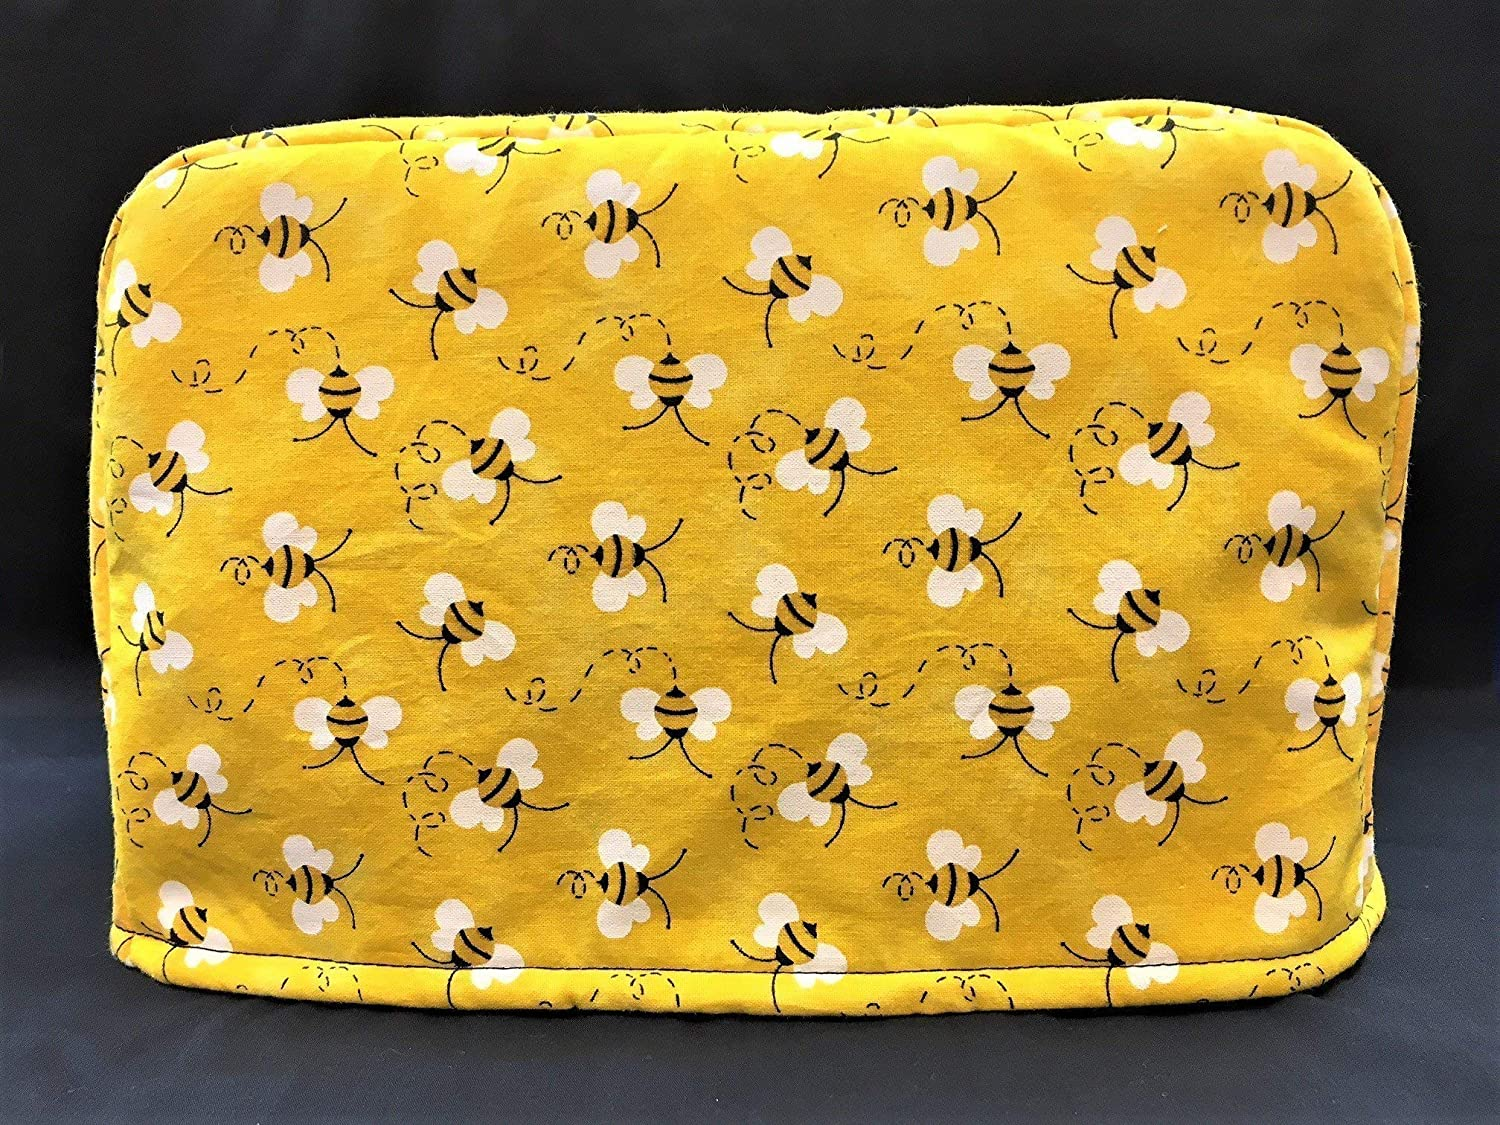 "Bumble Bees on Yellow Reversible 2 Slice Toaster Cover 11.5""(l) x 7.5""(h) x 5.5""(w)"